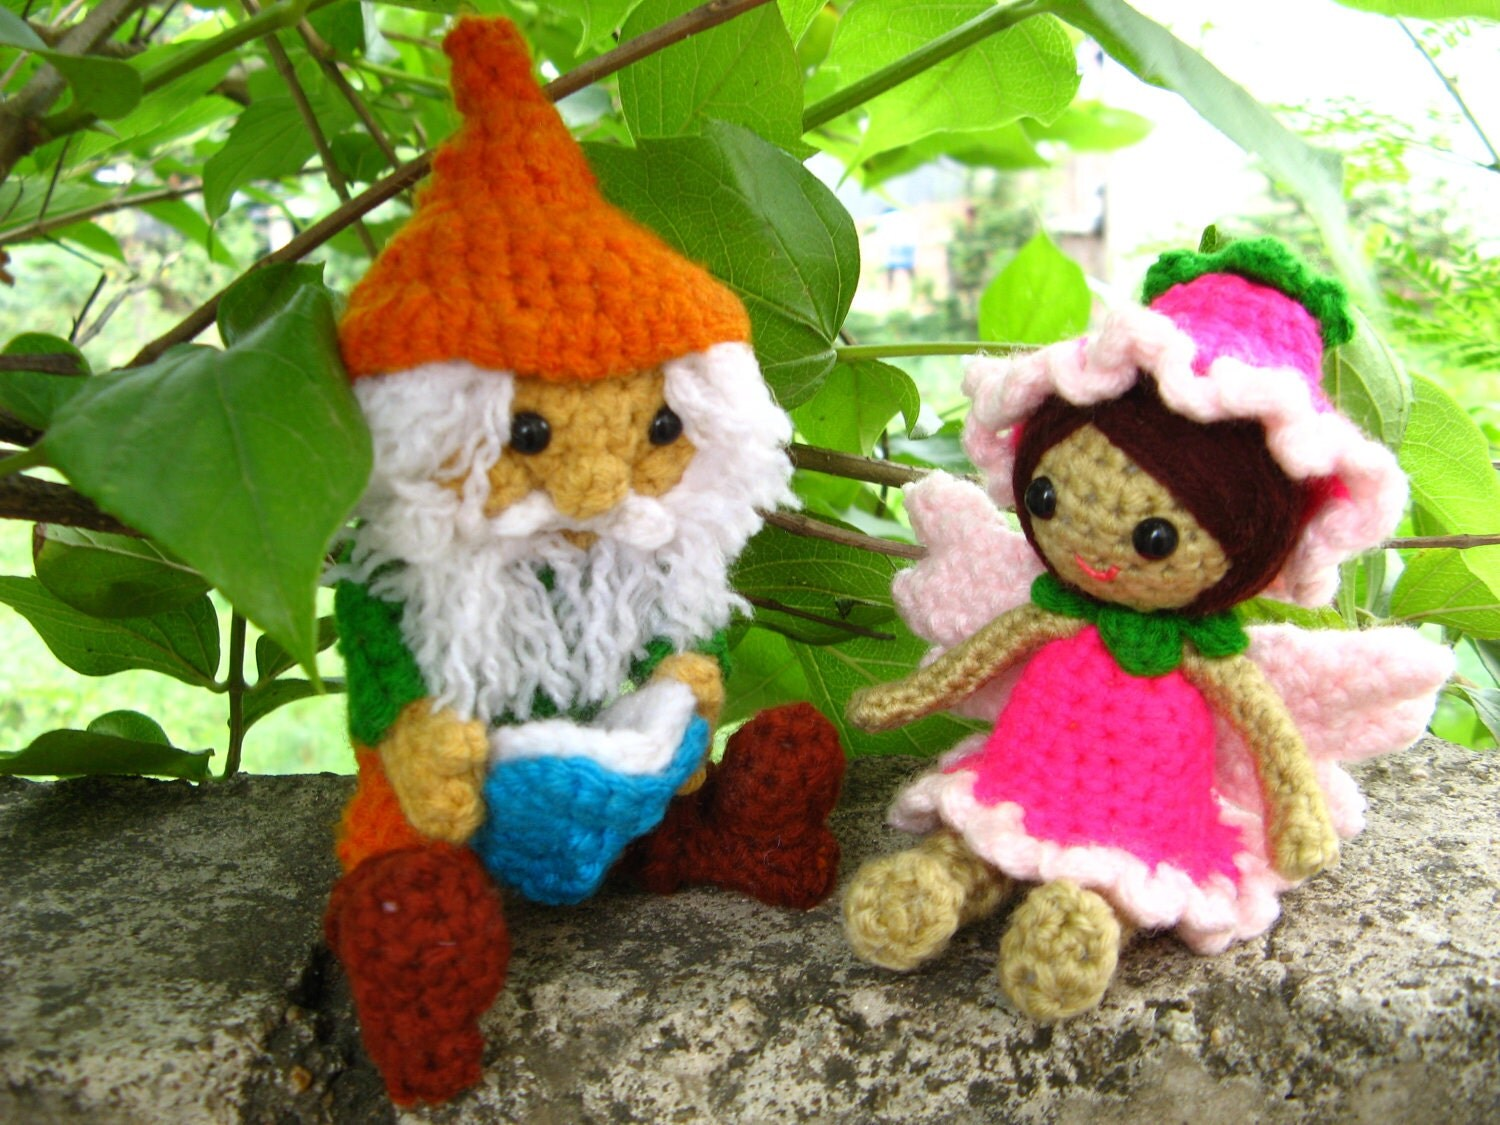 Amigurumi Flower Tutorial : Amigurumi garden gnome and flower fairy crochet by MADSBEAR